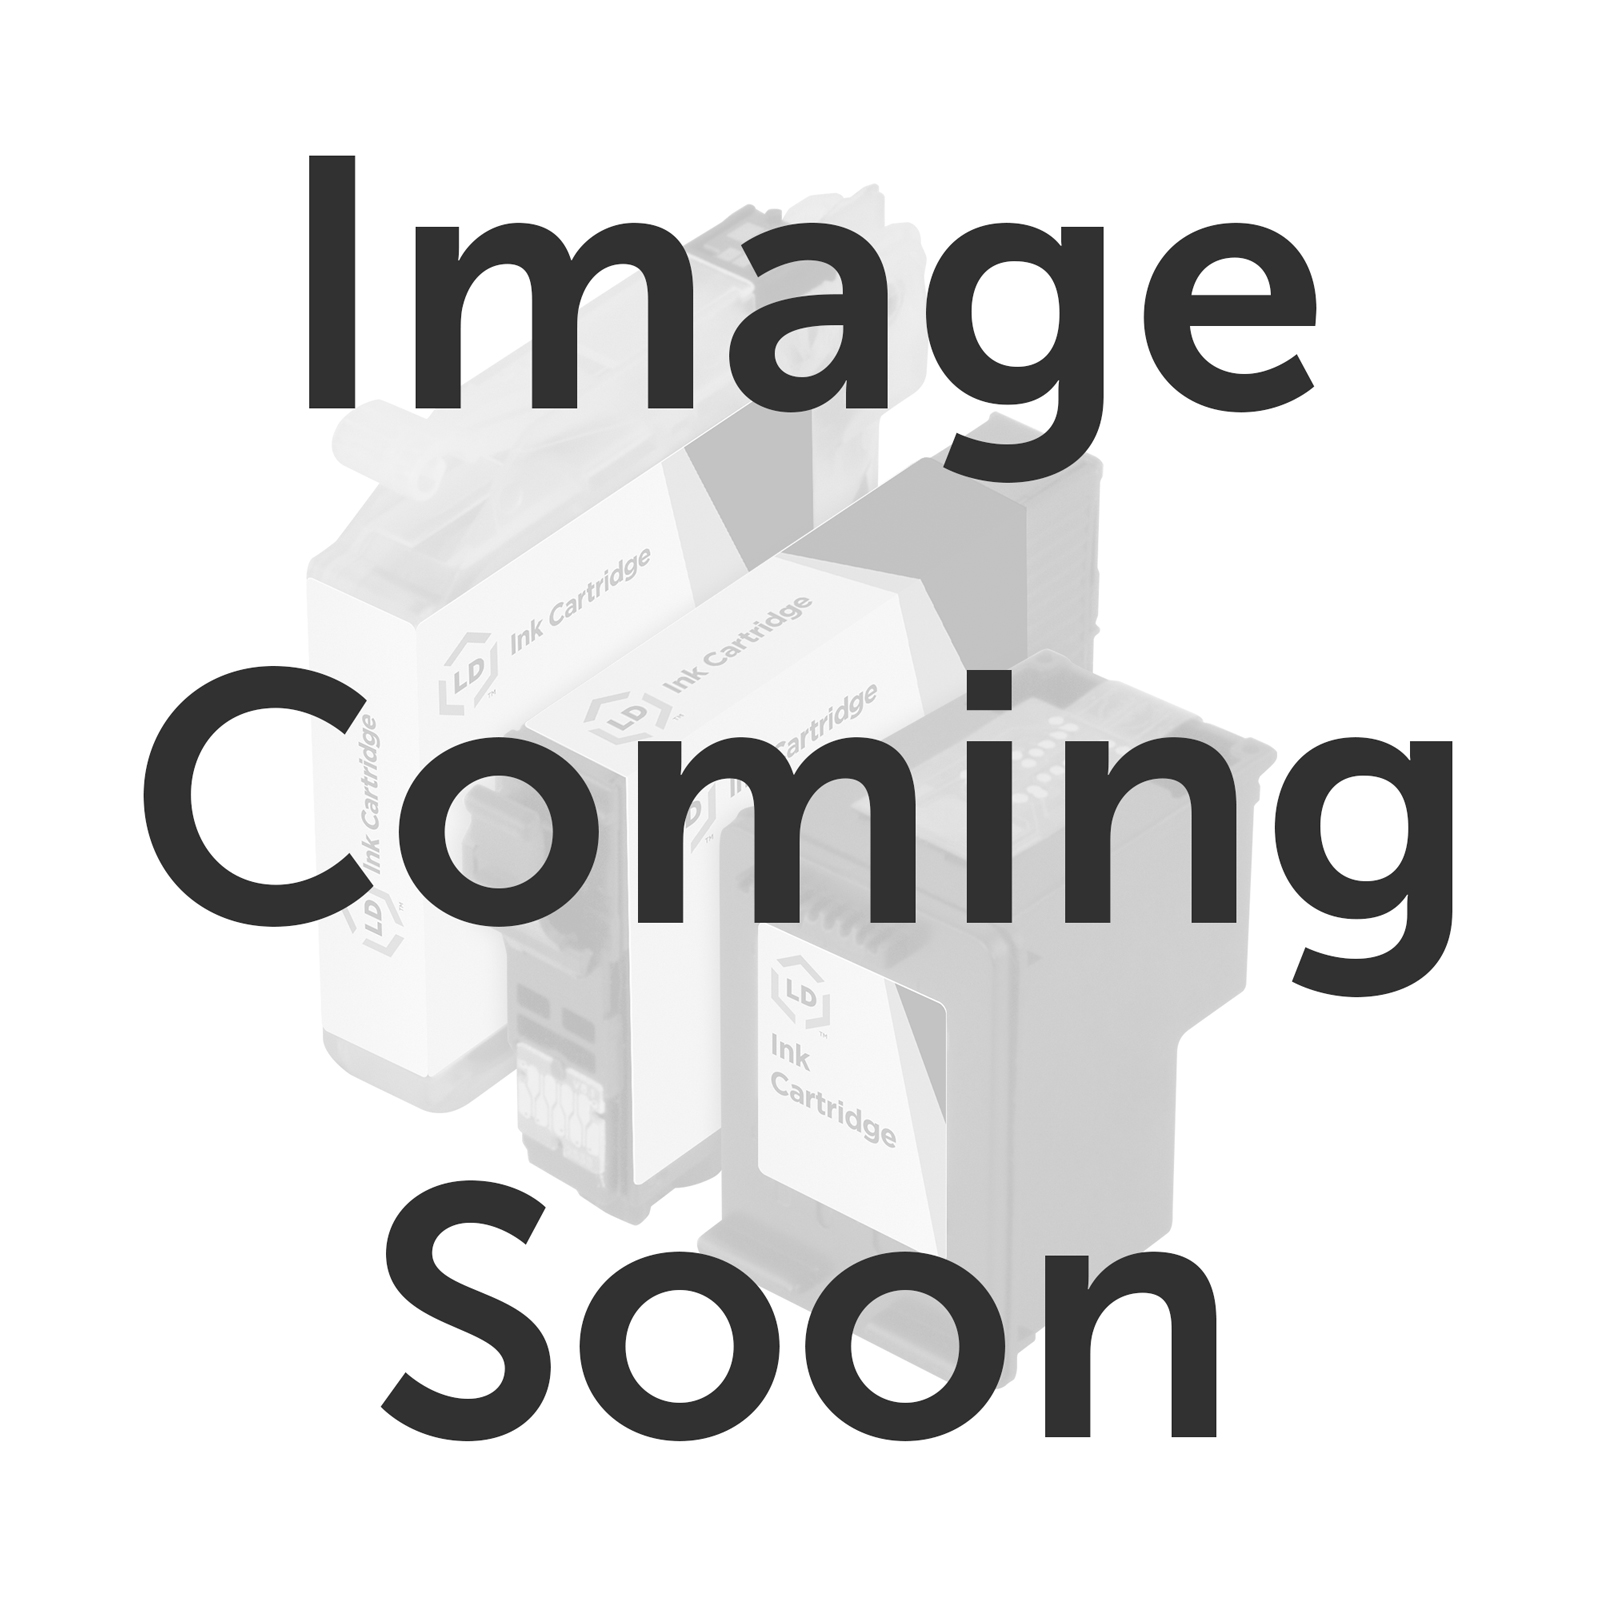 Compatible Epson T545300 Magenta Inkjet Cartridge for Stylus Pro 7600/9600